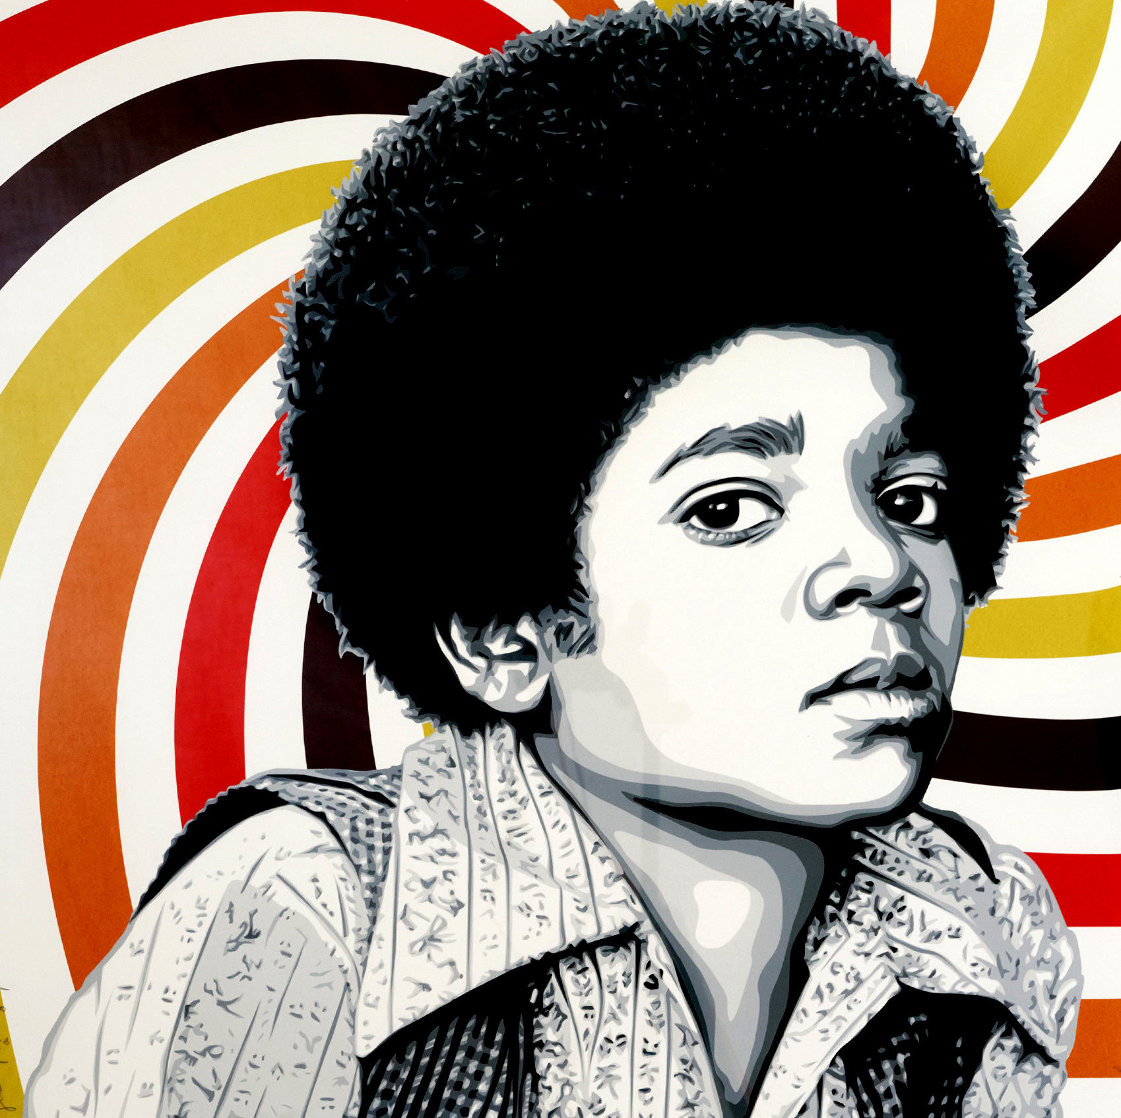 Rock With You 2013  Michael Jackson Limited Edition Print by Mr. Brainwash